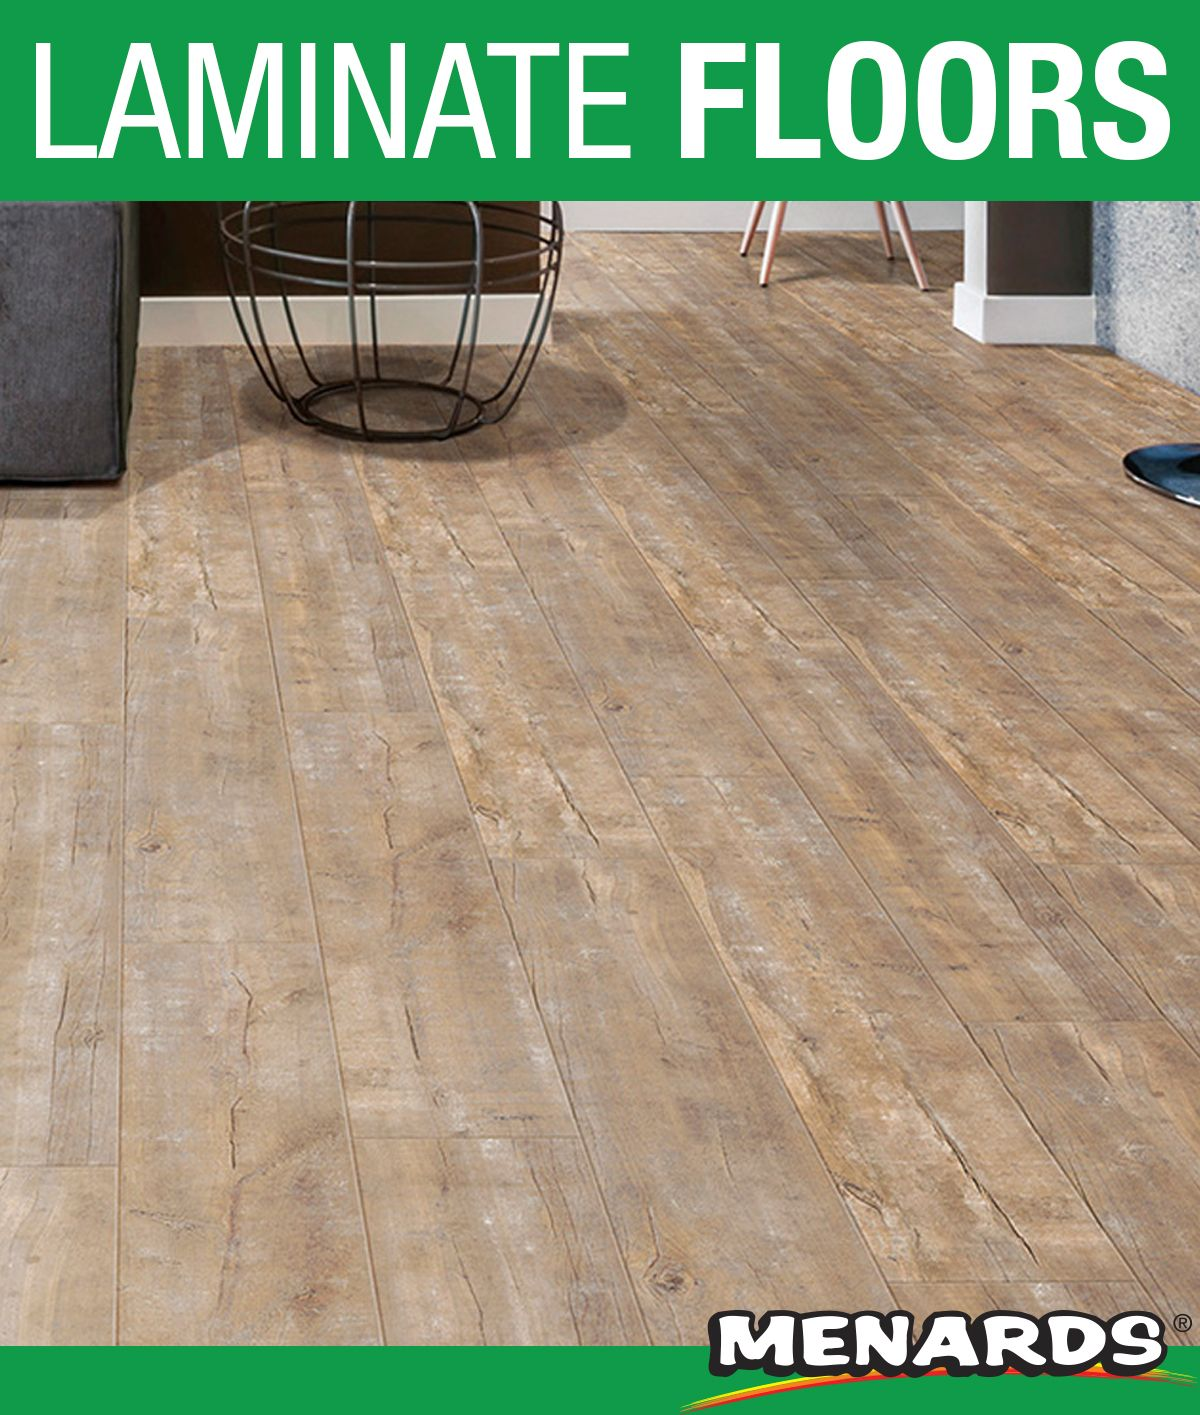 Tarkett Bravado Laminate Floors Have Wood Grain Textures And Beveled Edges To Give You An Added Sense Of Realism Wood Grain Texture Laminate Flooring Flooring